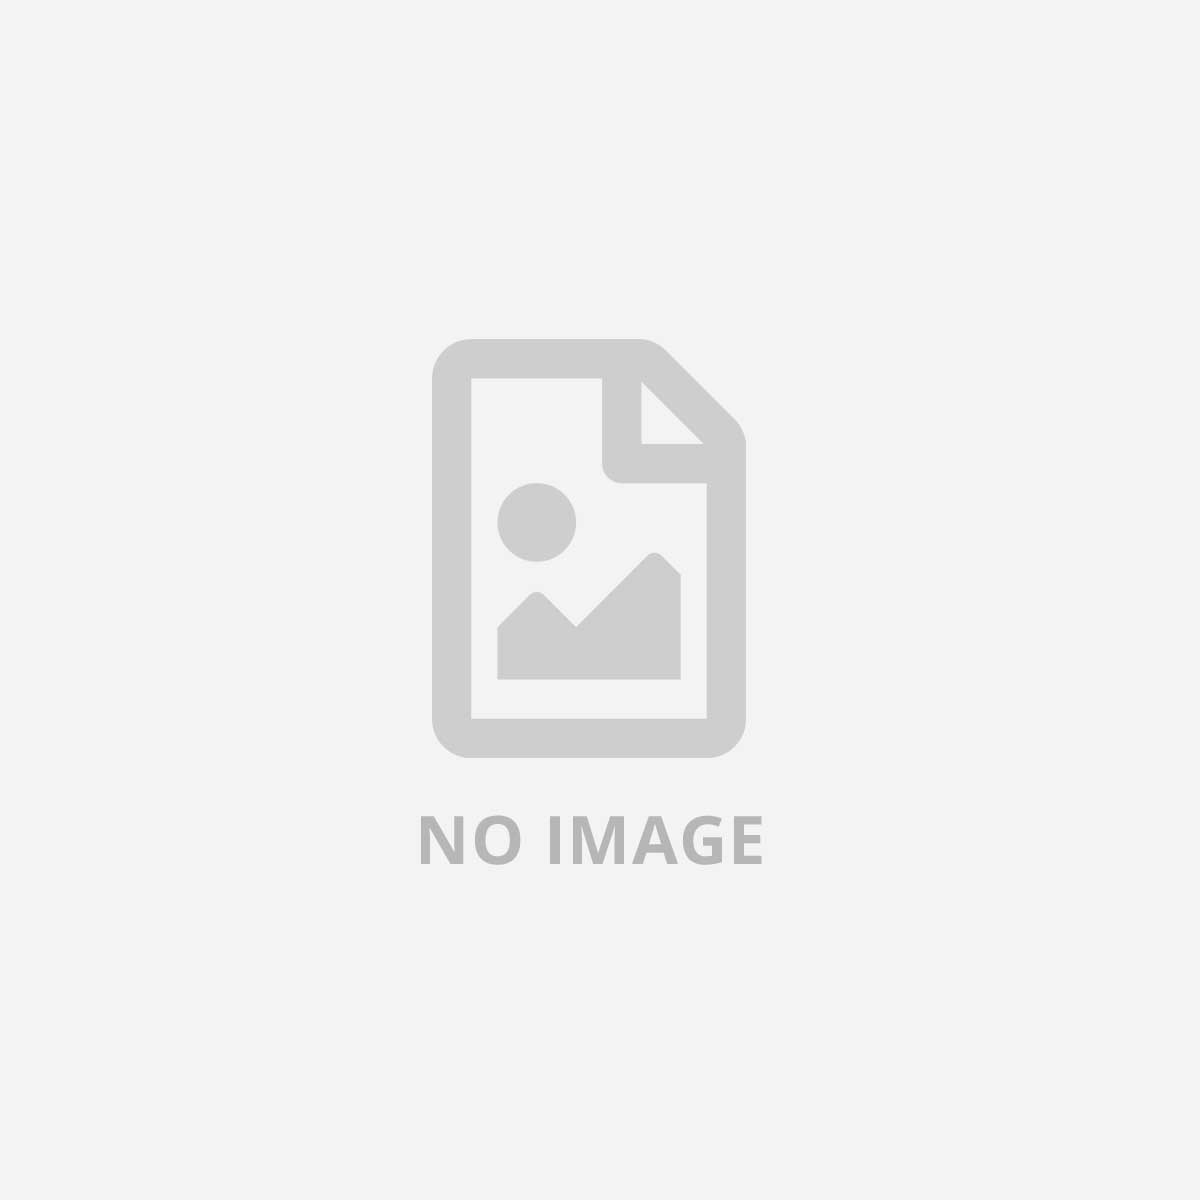 NILOX ERNEST - THE FIT TRACKER